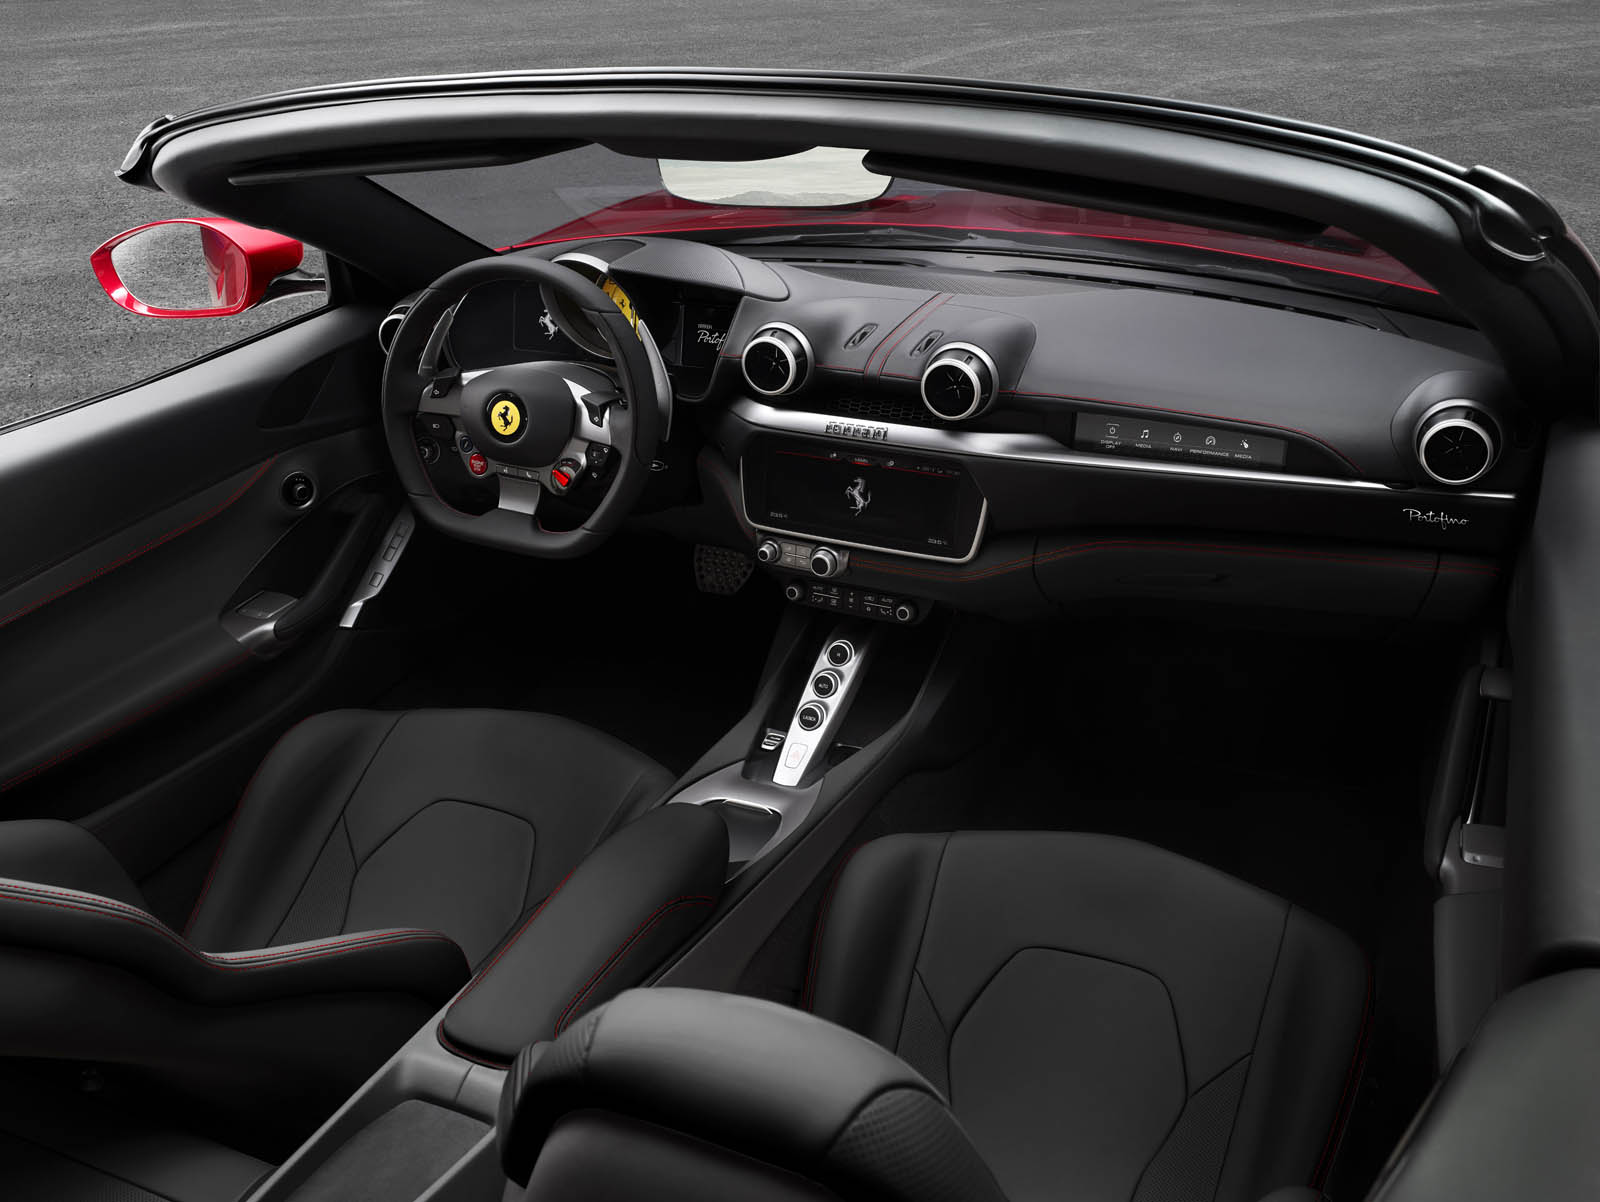 2018 ferrari portofino specs. unique portofino blocking ads can be devastating to sites you love and result in people  losing their jobs negatively affect the quality of content throughout 2018 ferrari portofino specs